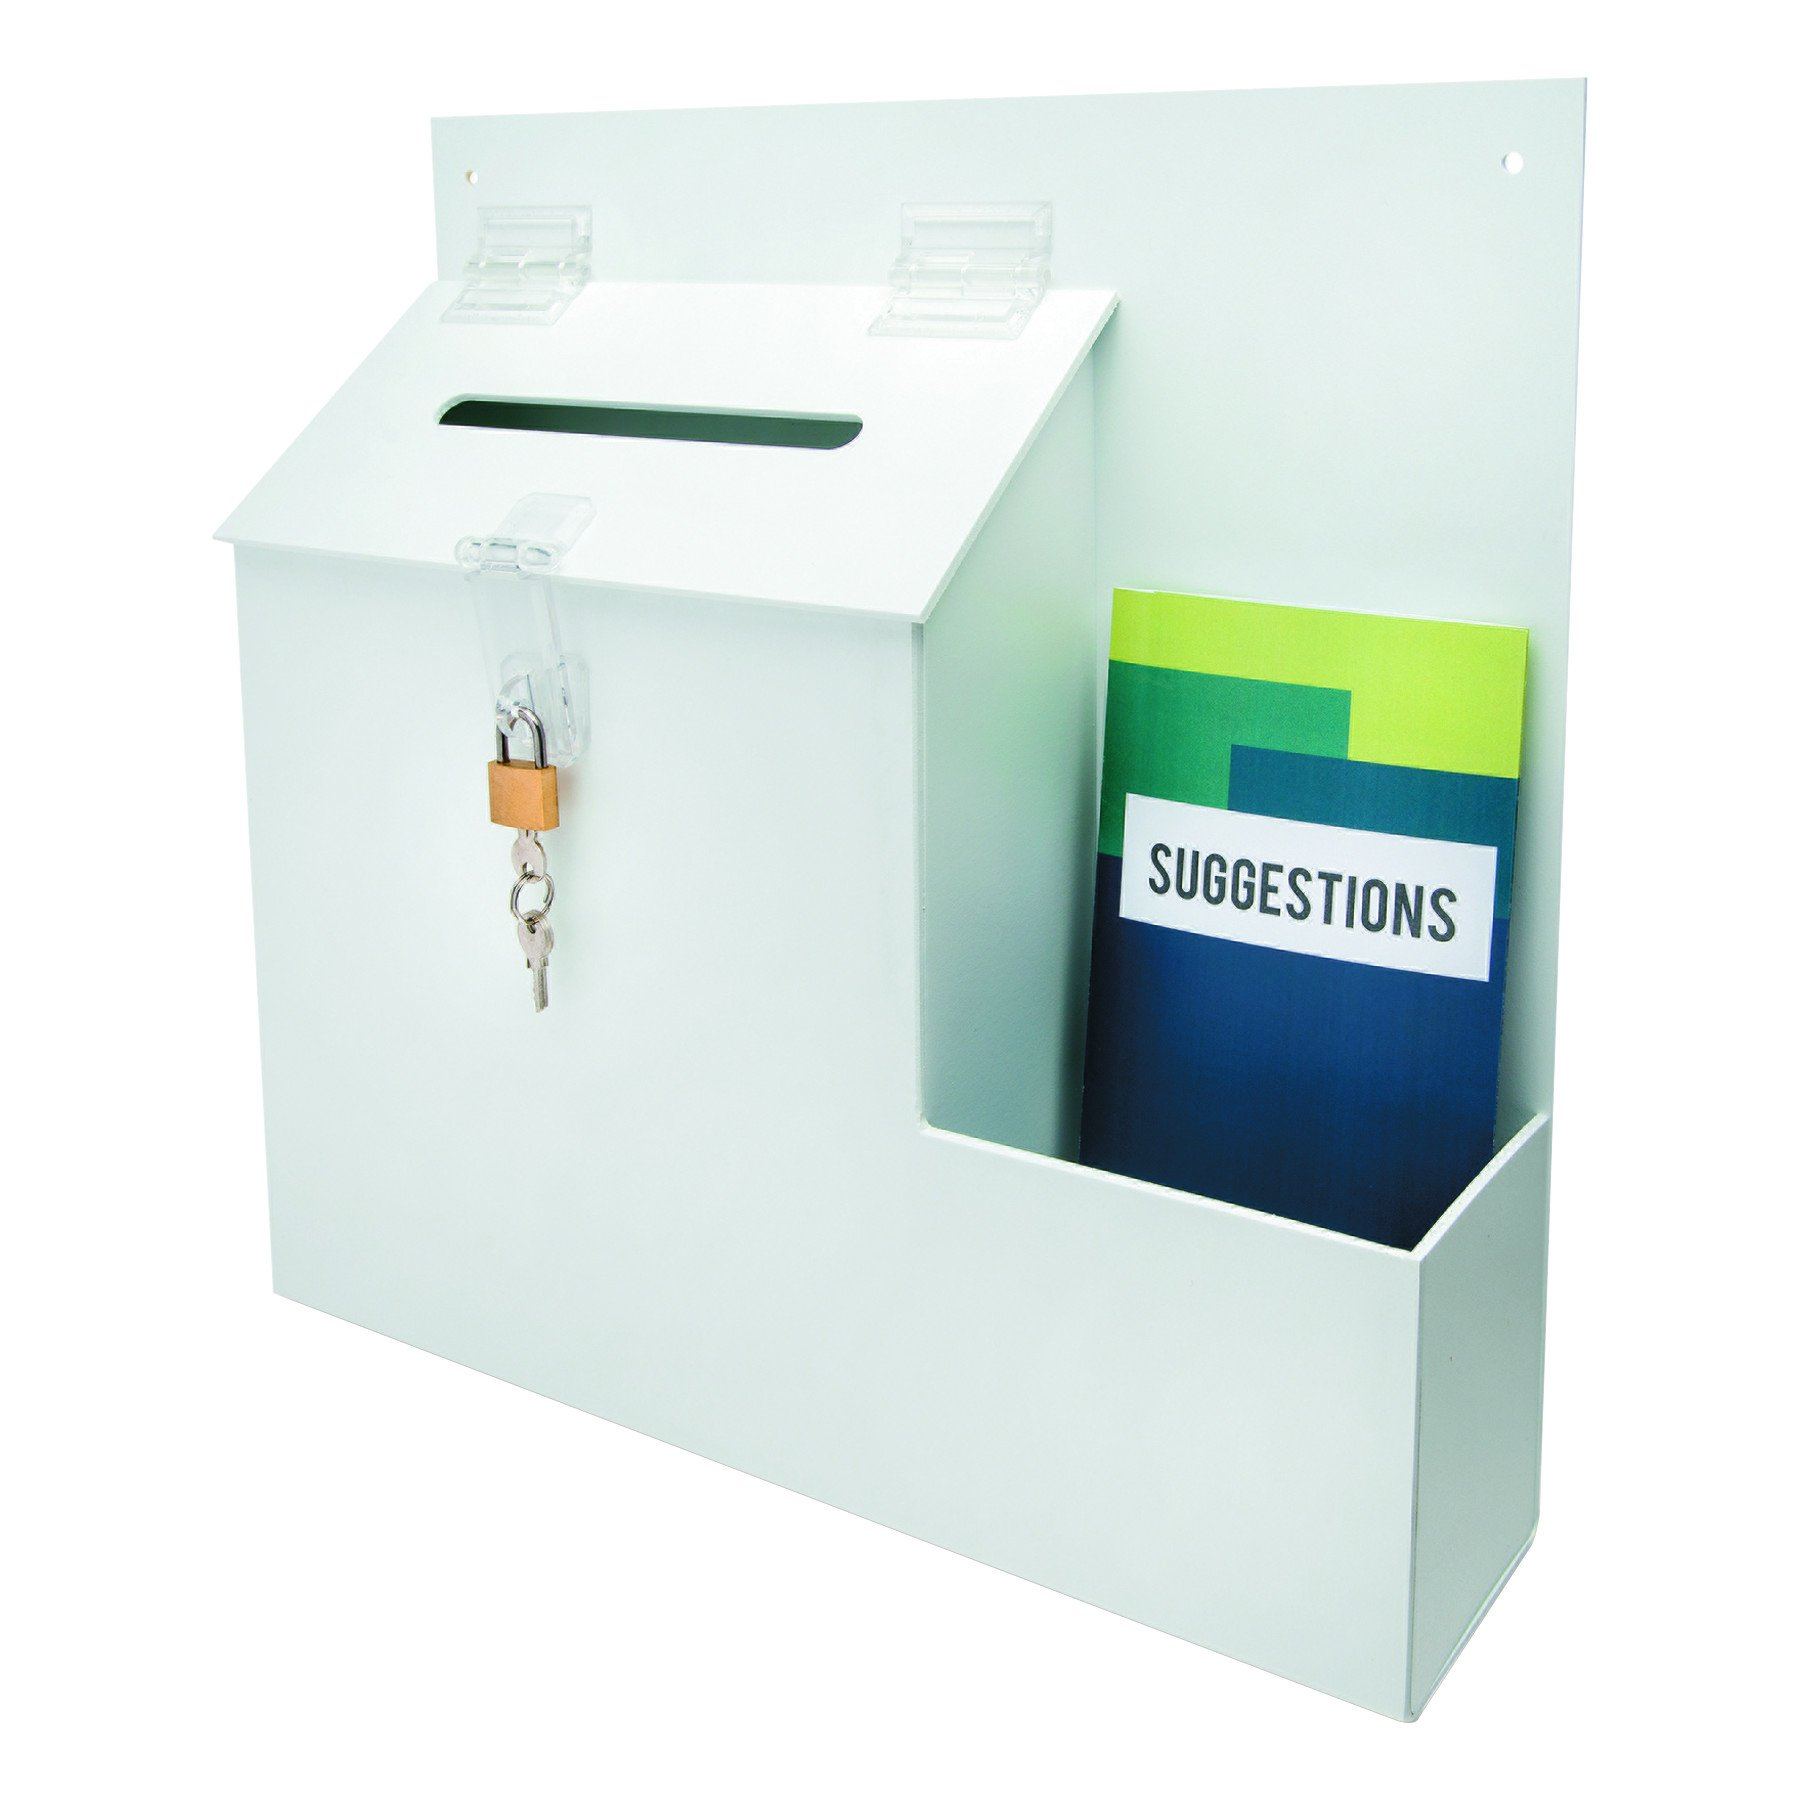 deflecto 79803 Plastic Suggestion Box with Locking Top, 13 3/4 x 3 5/8 x 13 15/16, White